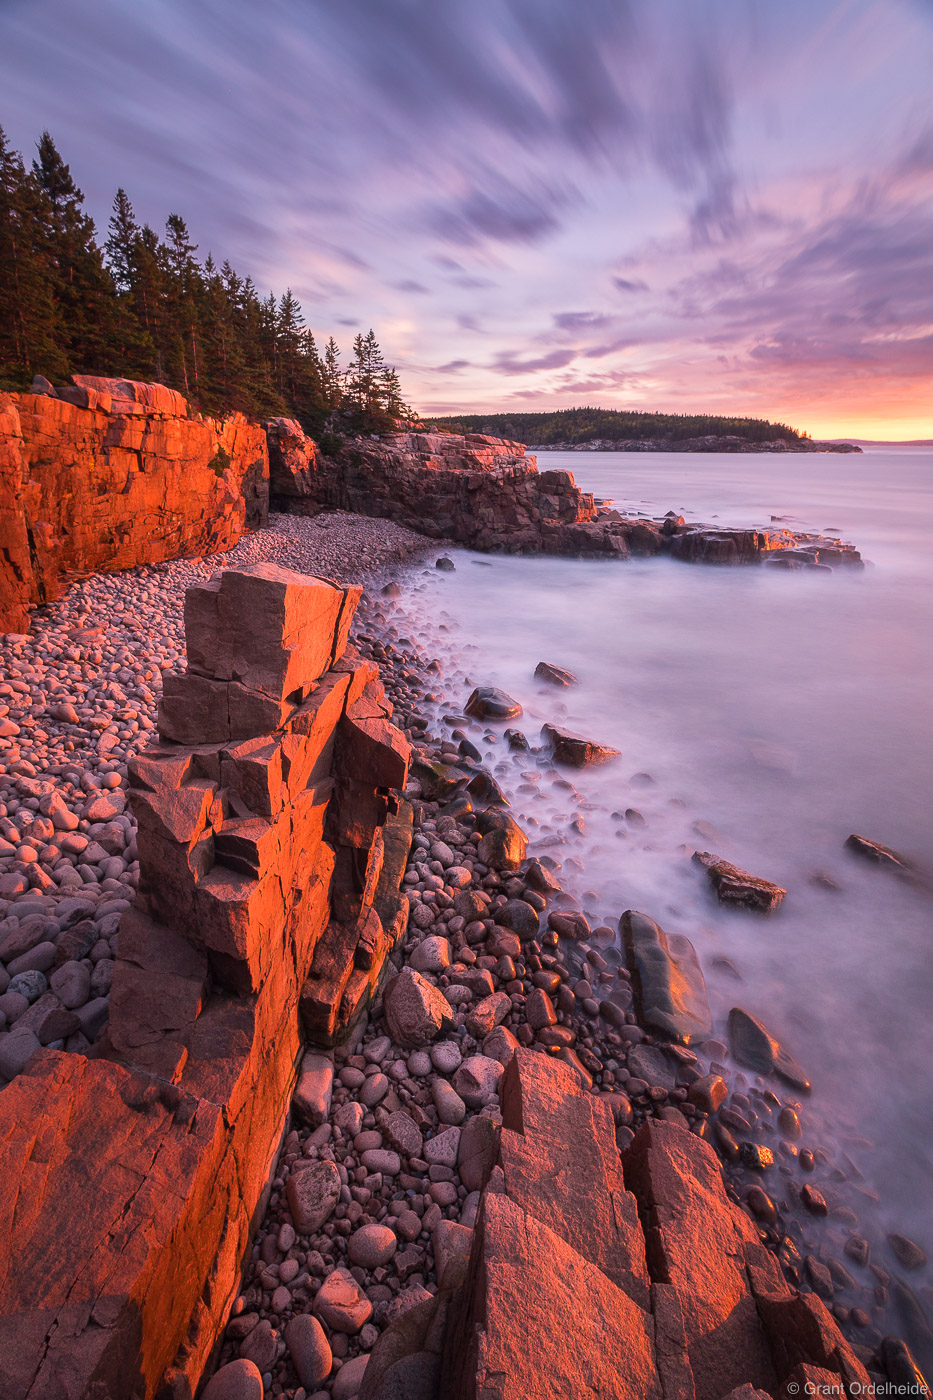 Sunrise over a rocky beach in Maine's Acadia National Park.